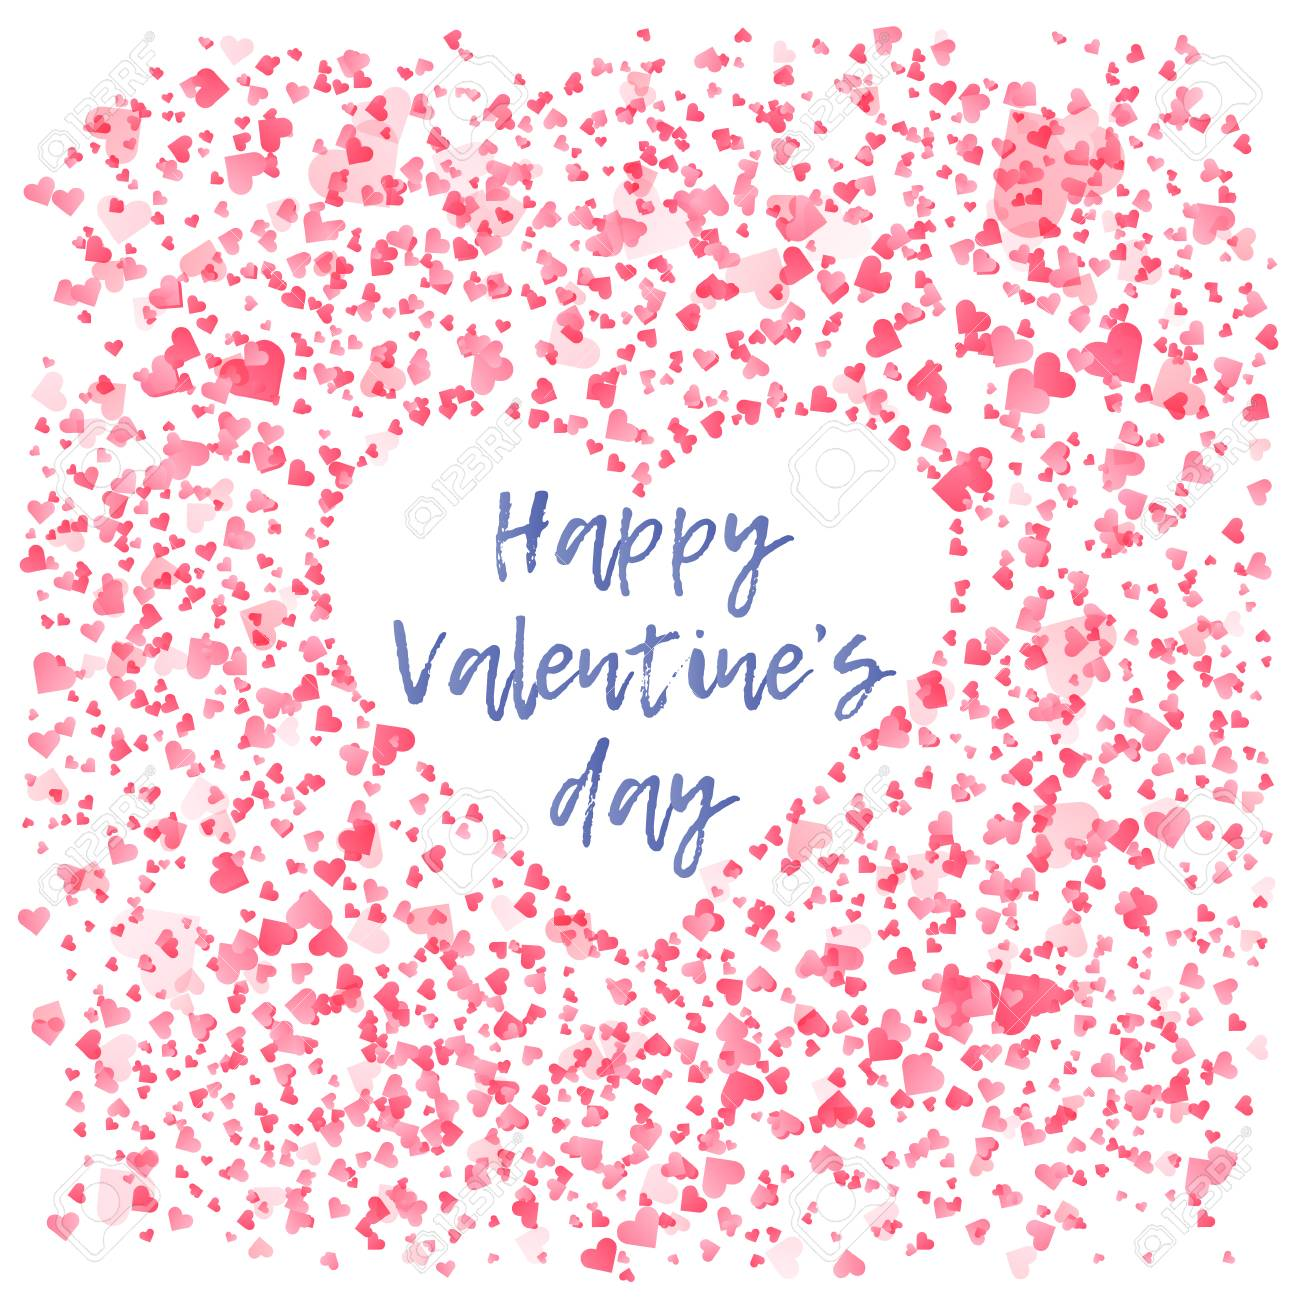 Tender Pink Hearts Background With Negative Space White Heart